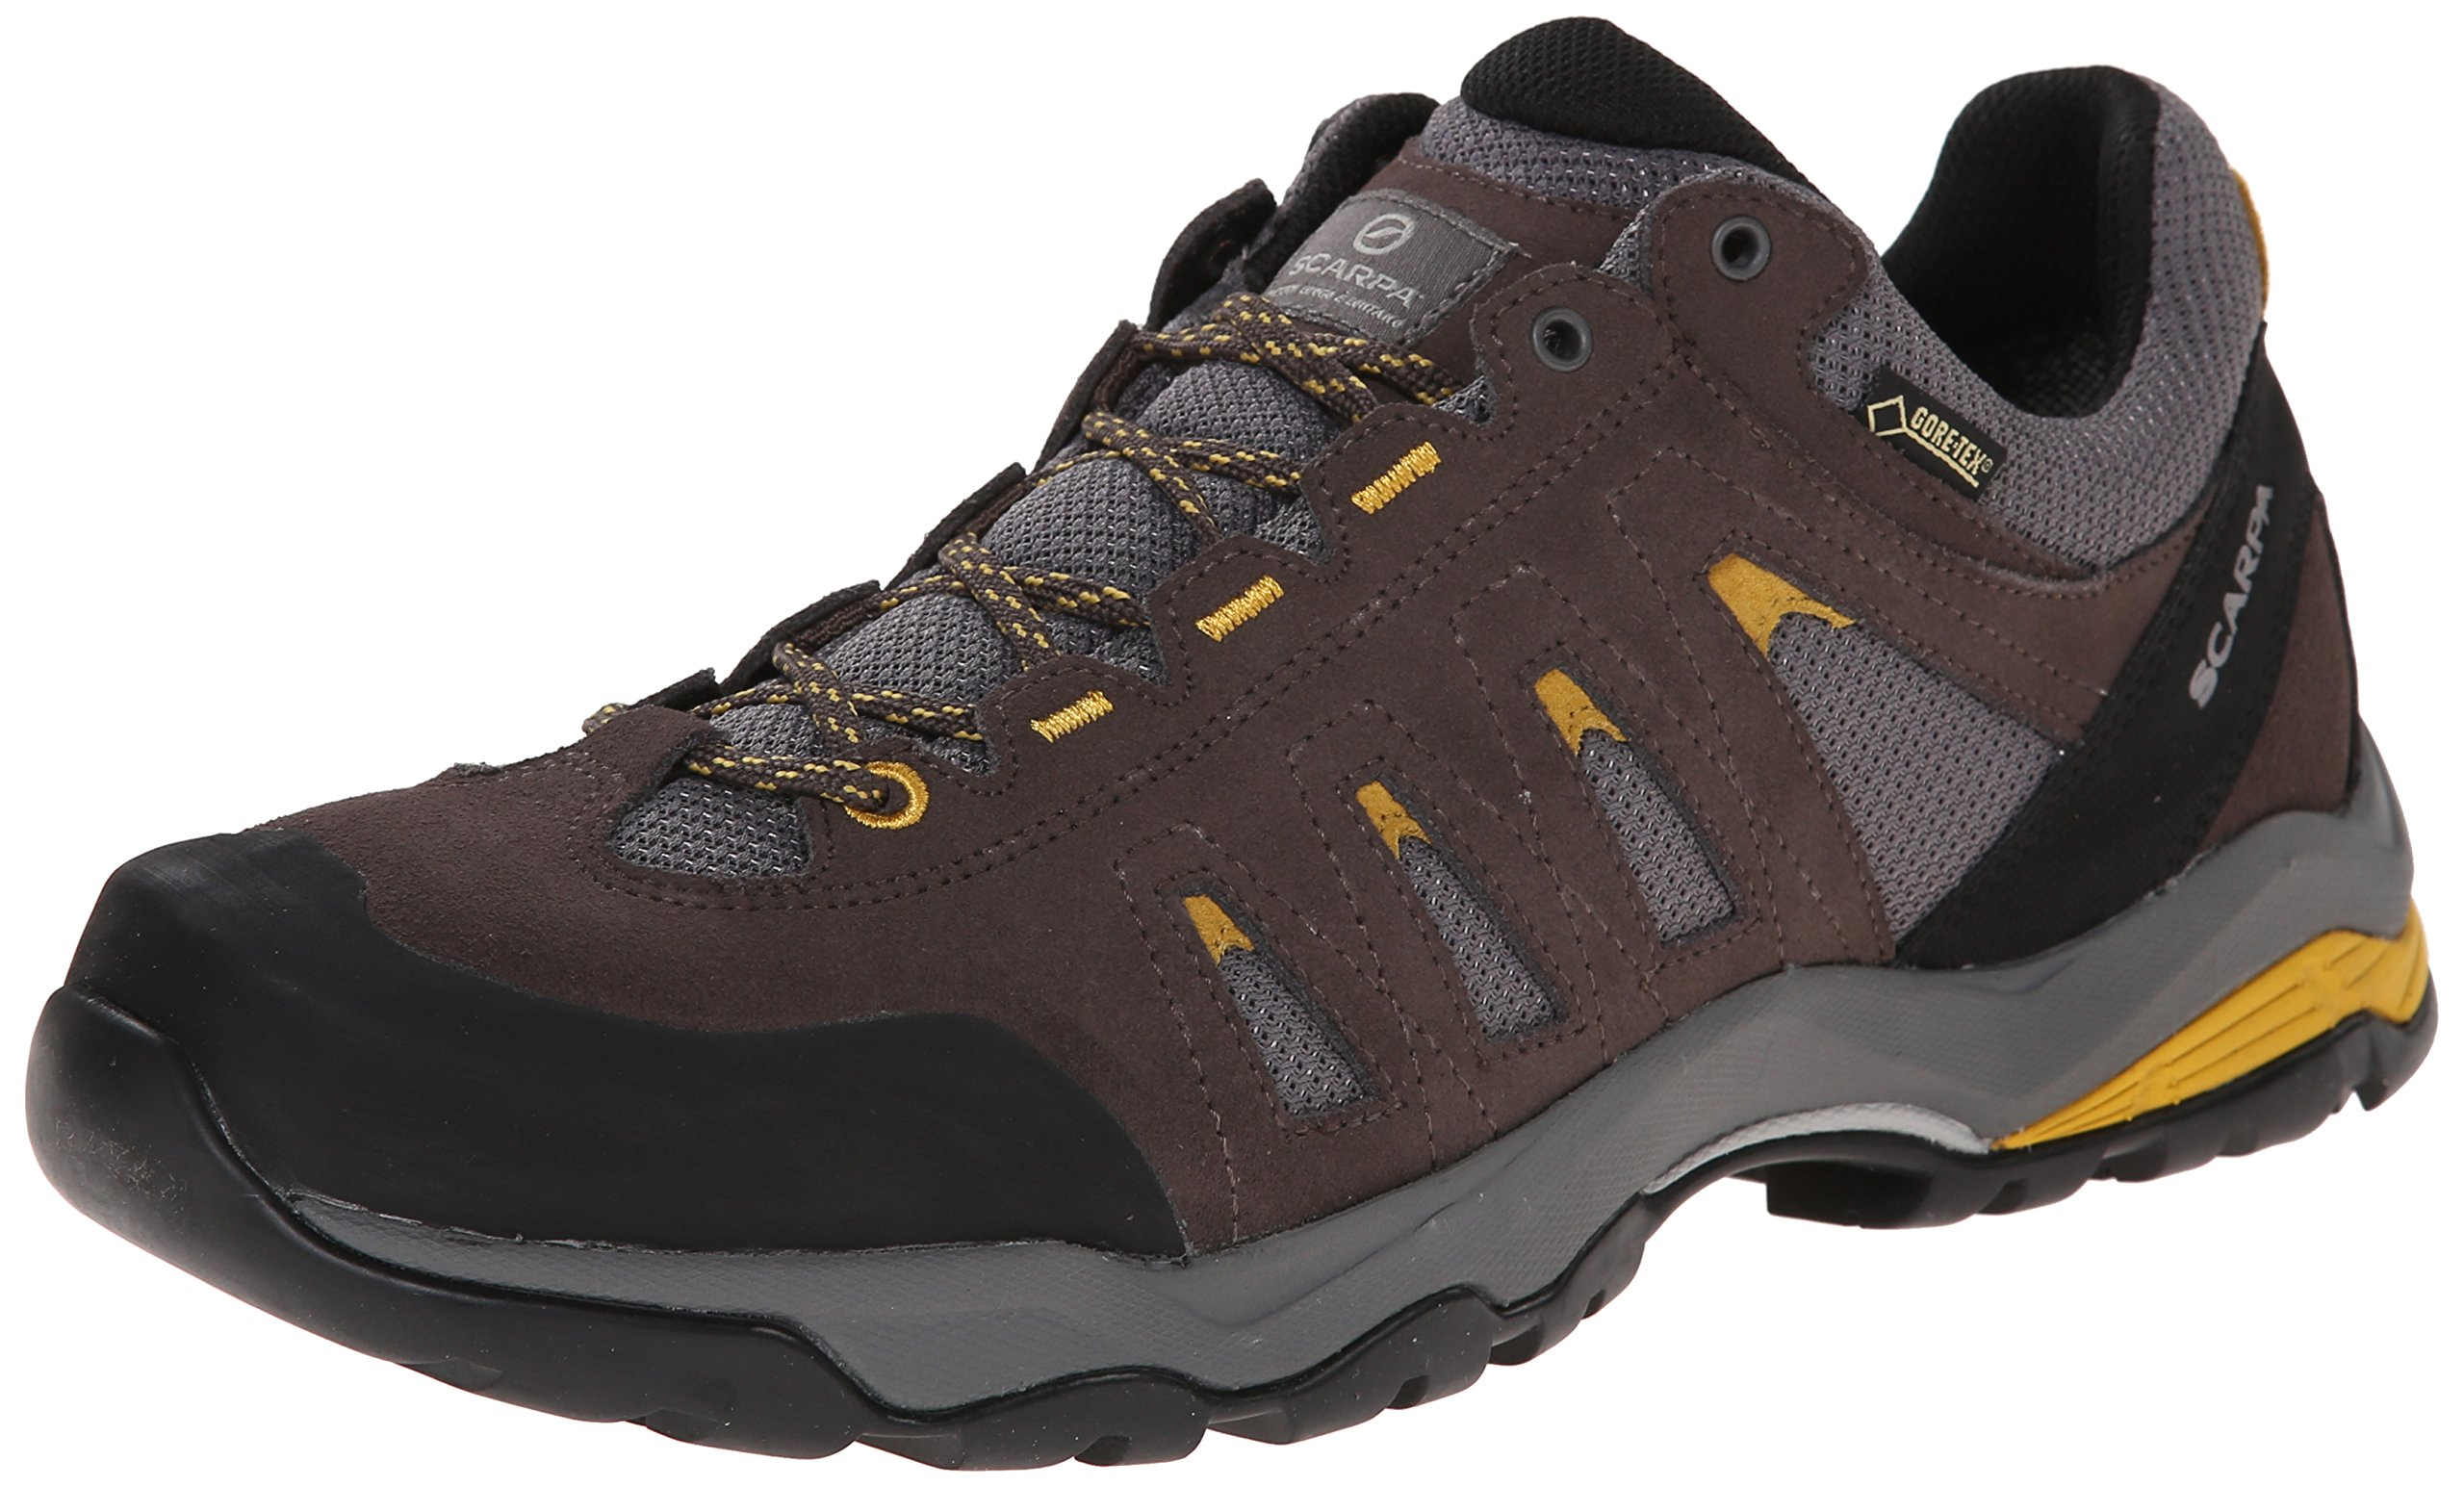 Scarpa Men's Moraine GTX Hiking Shoe, Charcoal/Mustard, 41.5 EU/8.5 M US